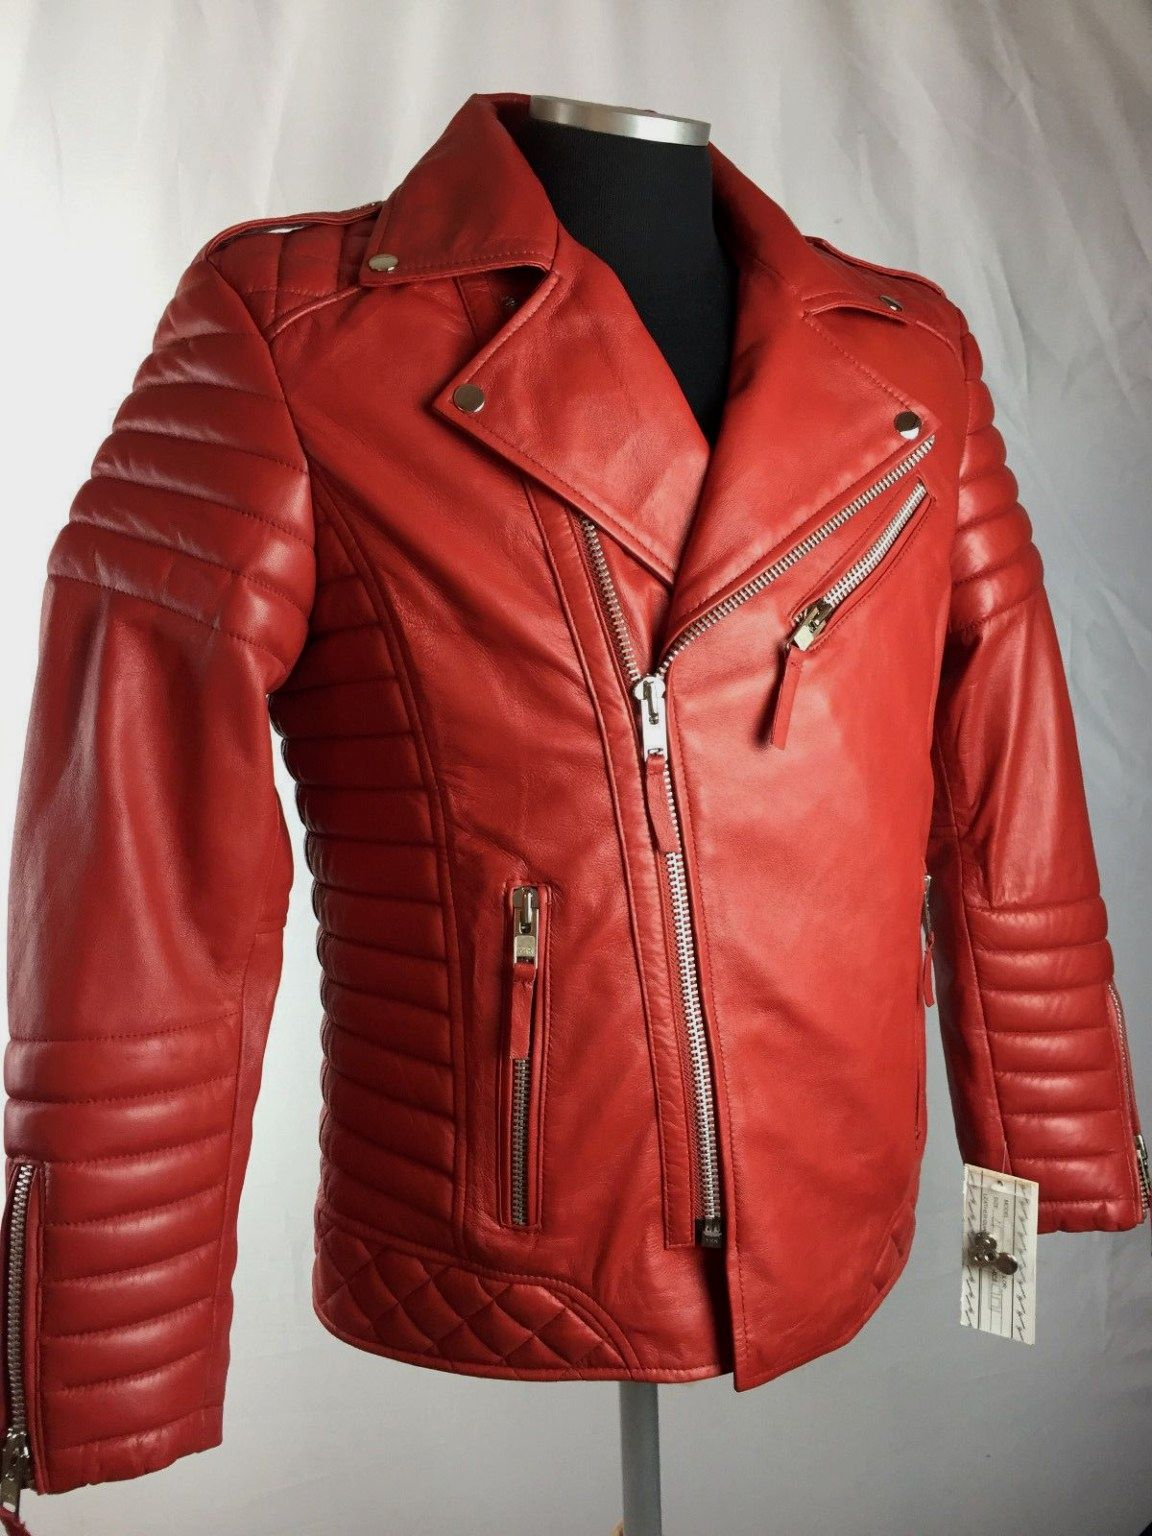 to wear - Leather stylish jackets online video